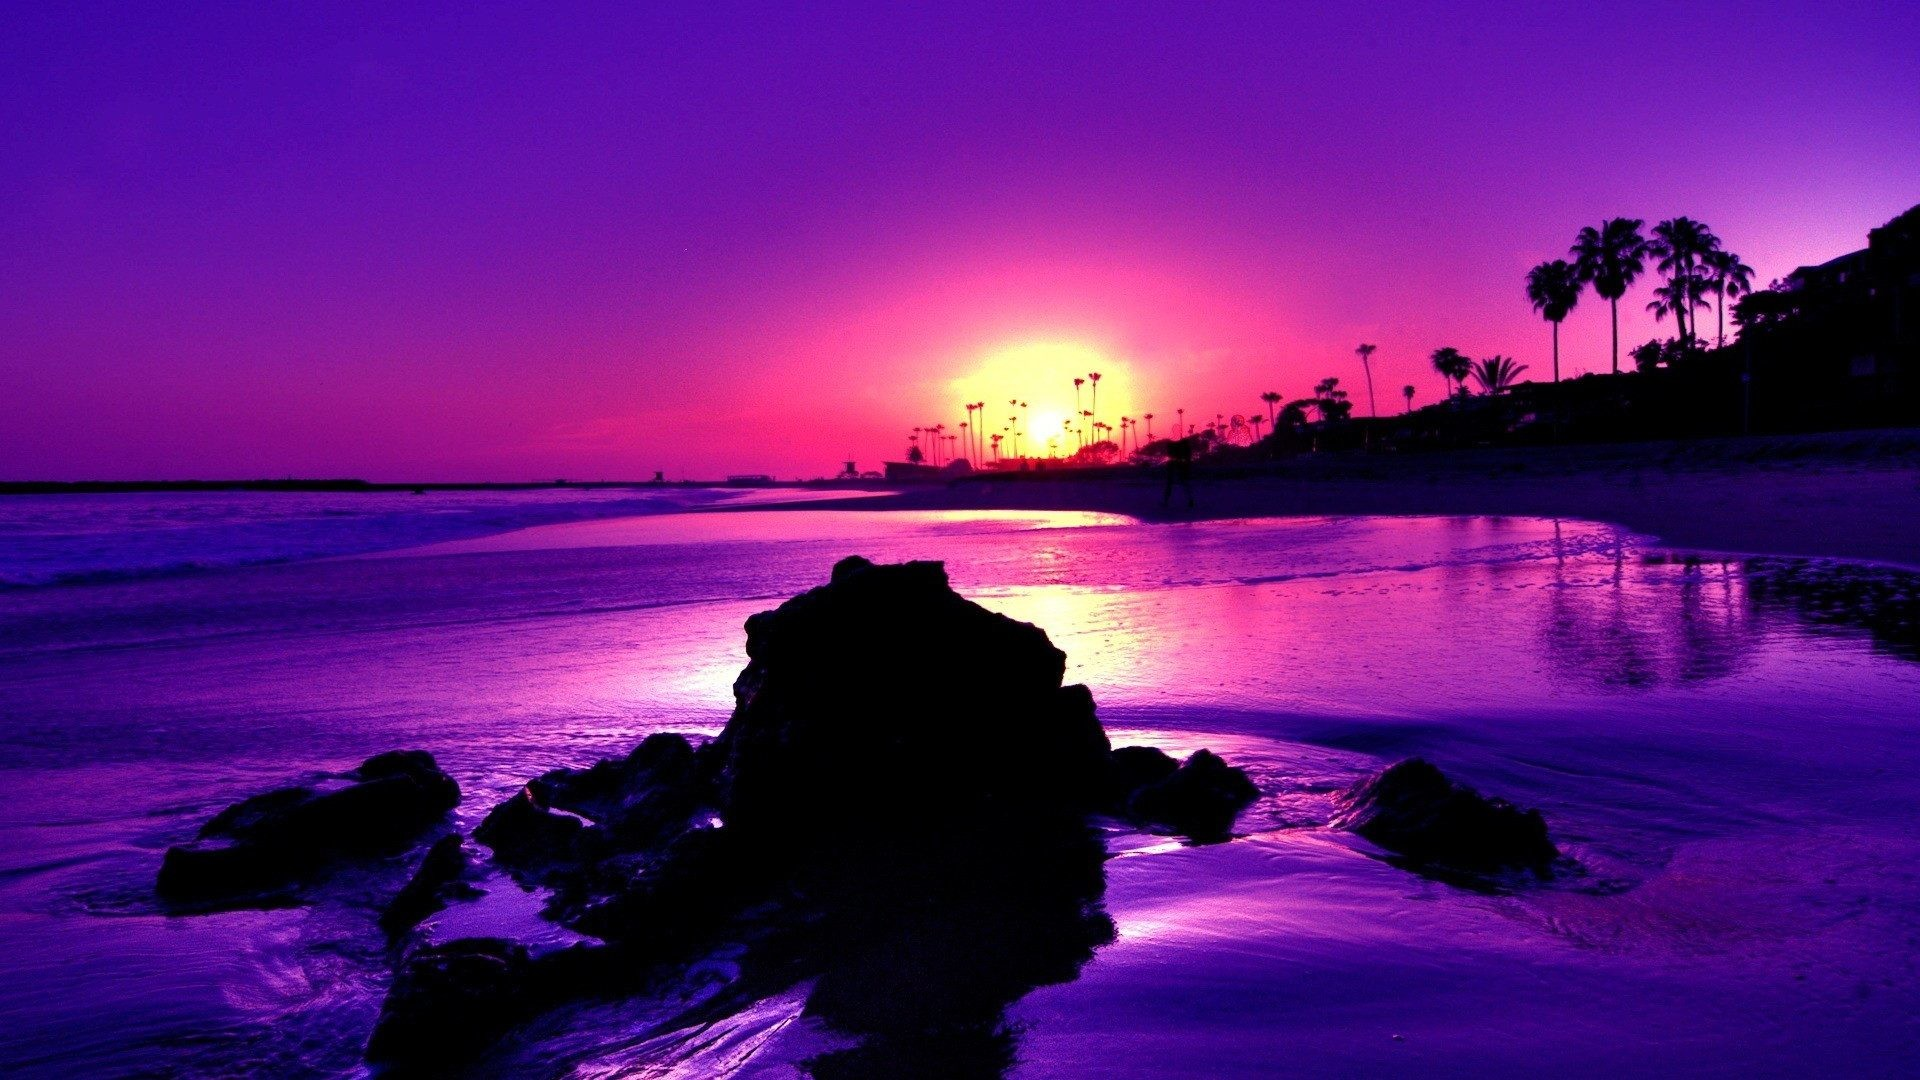 Cool purple background 1920x1080 colours colorful black cool purple gulls yellow sunsets sunrise landscape beautiful shadows sand scenic reflections blue scene sky birds foam voltagebd Image collections